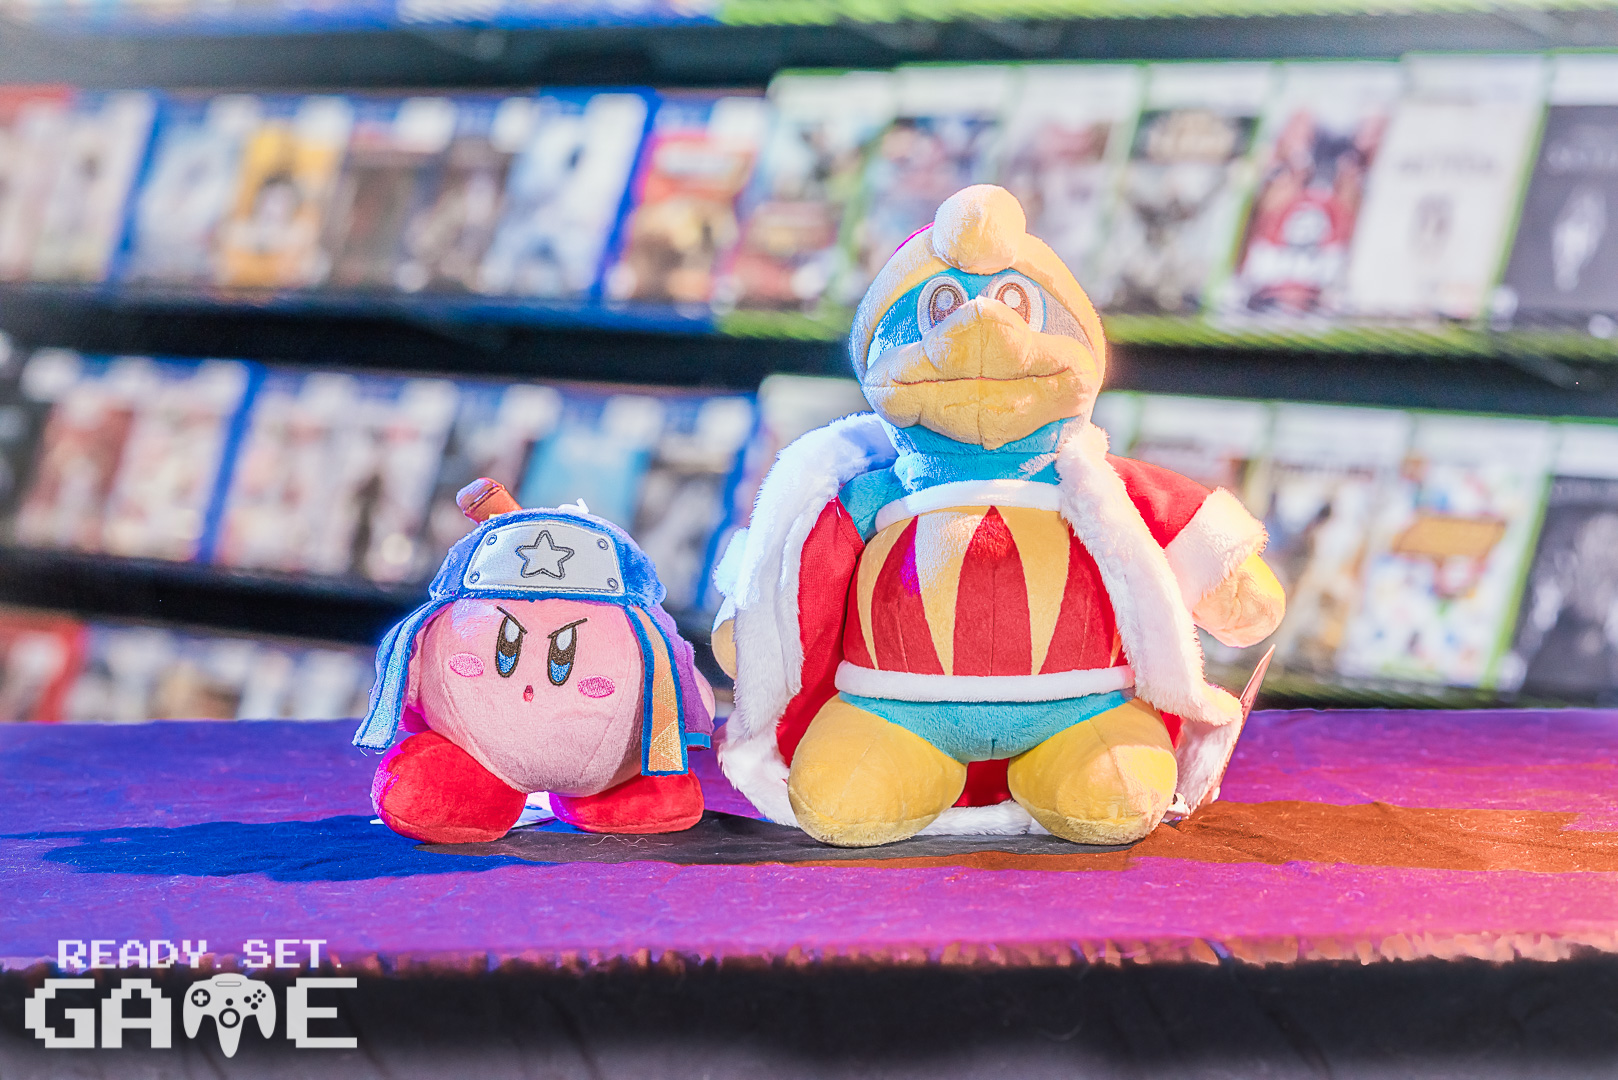 Ready set game video characters stuffed figurines